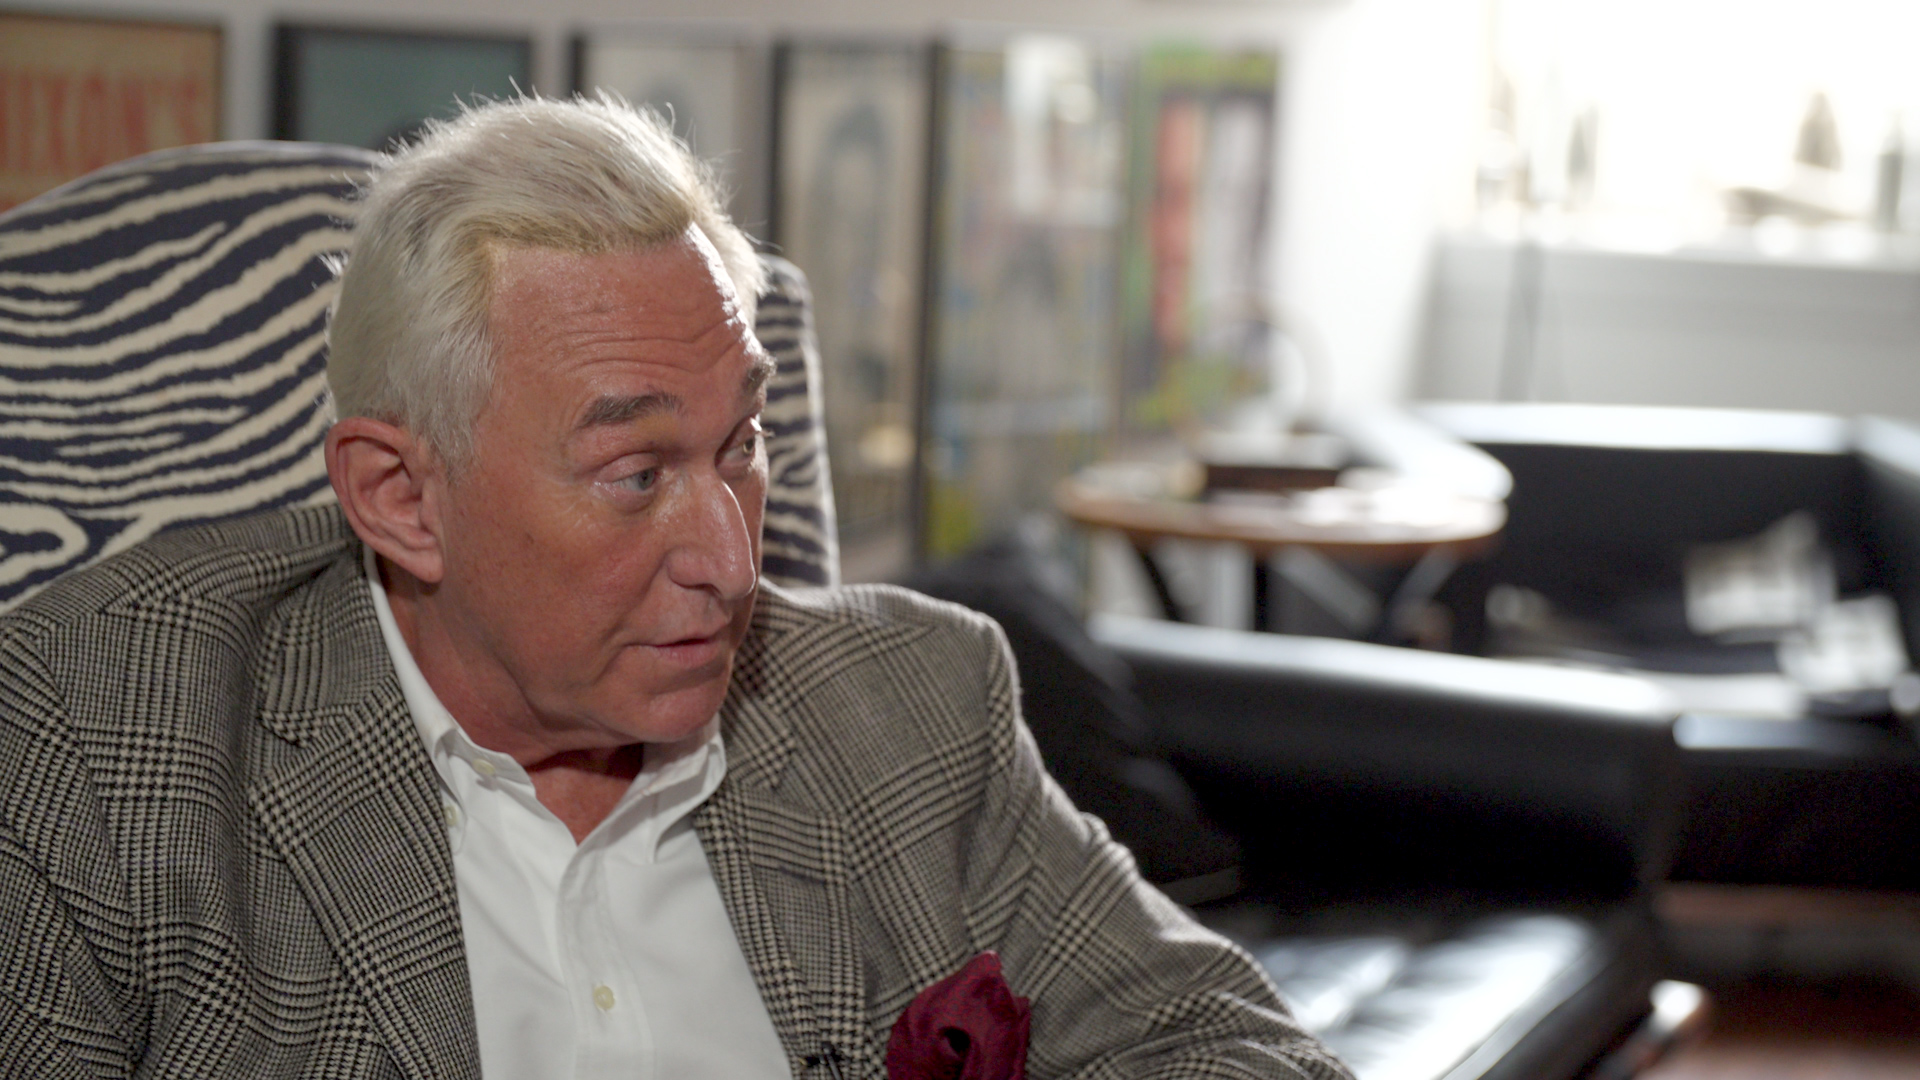 In email to Trump's campaign strategist, Roger Stone implied he knew of WikiLeaks's plans